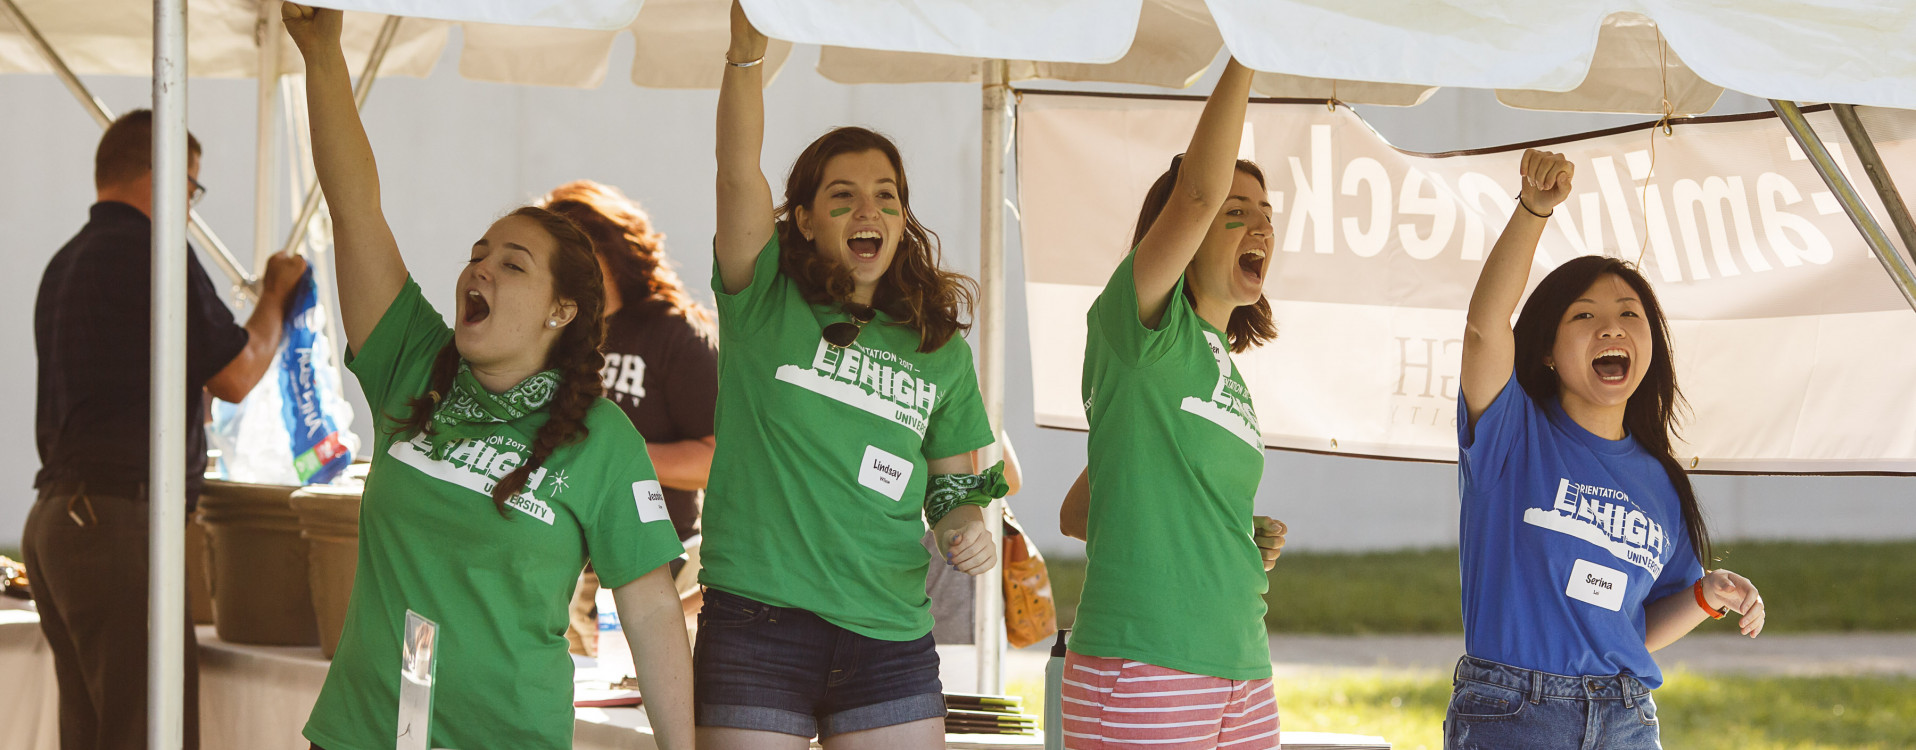 Orientation Leaders at check-in